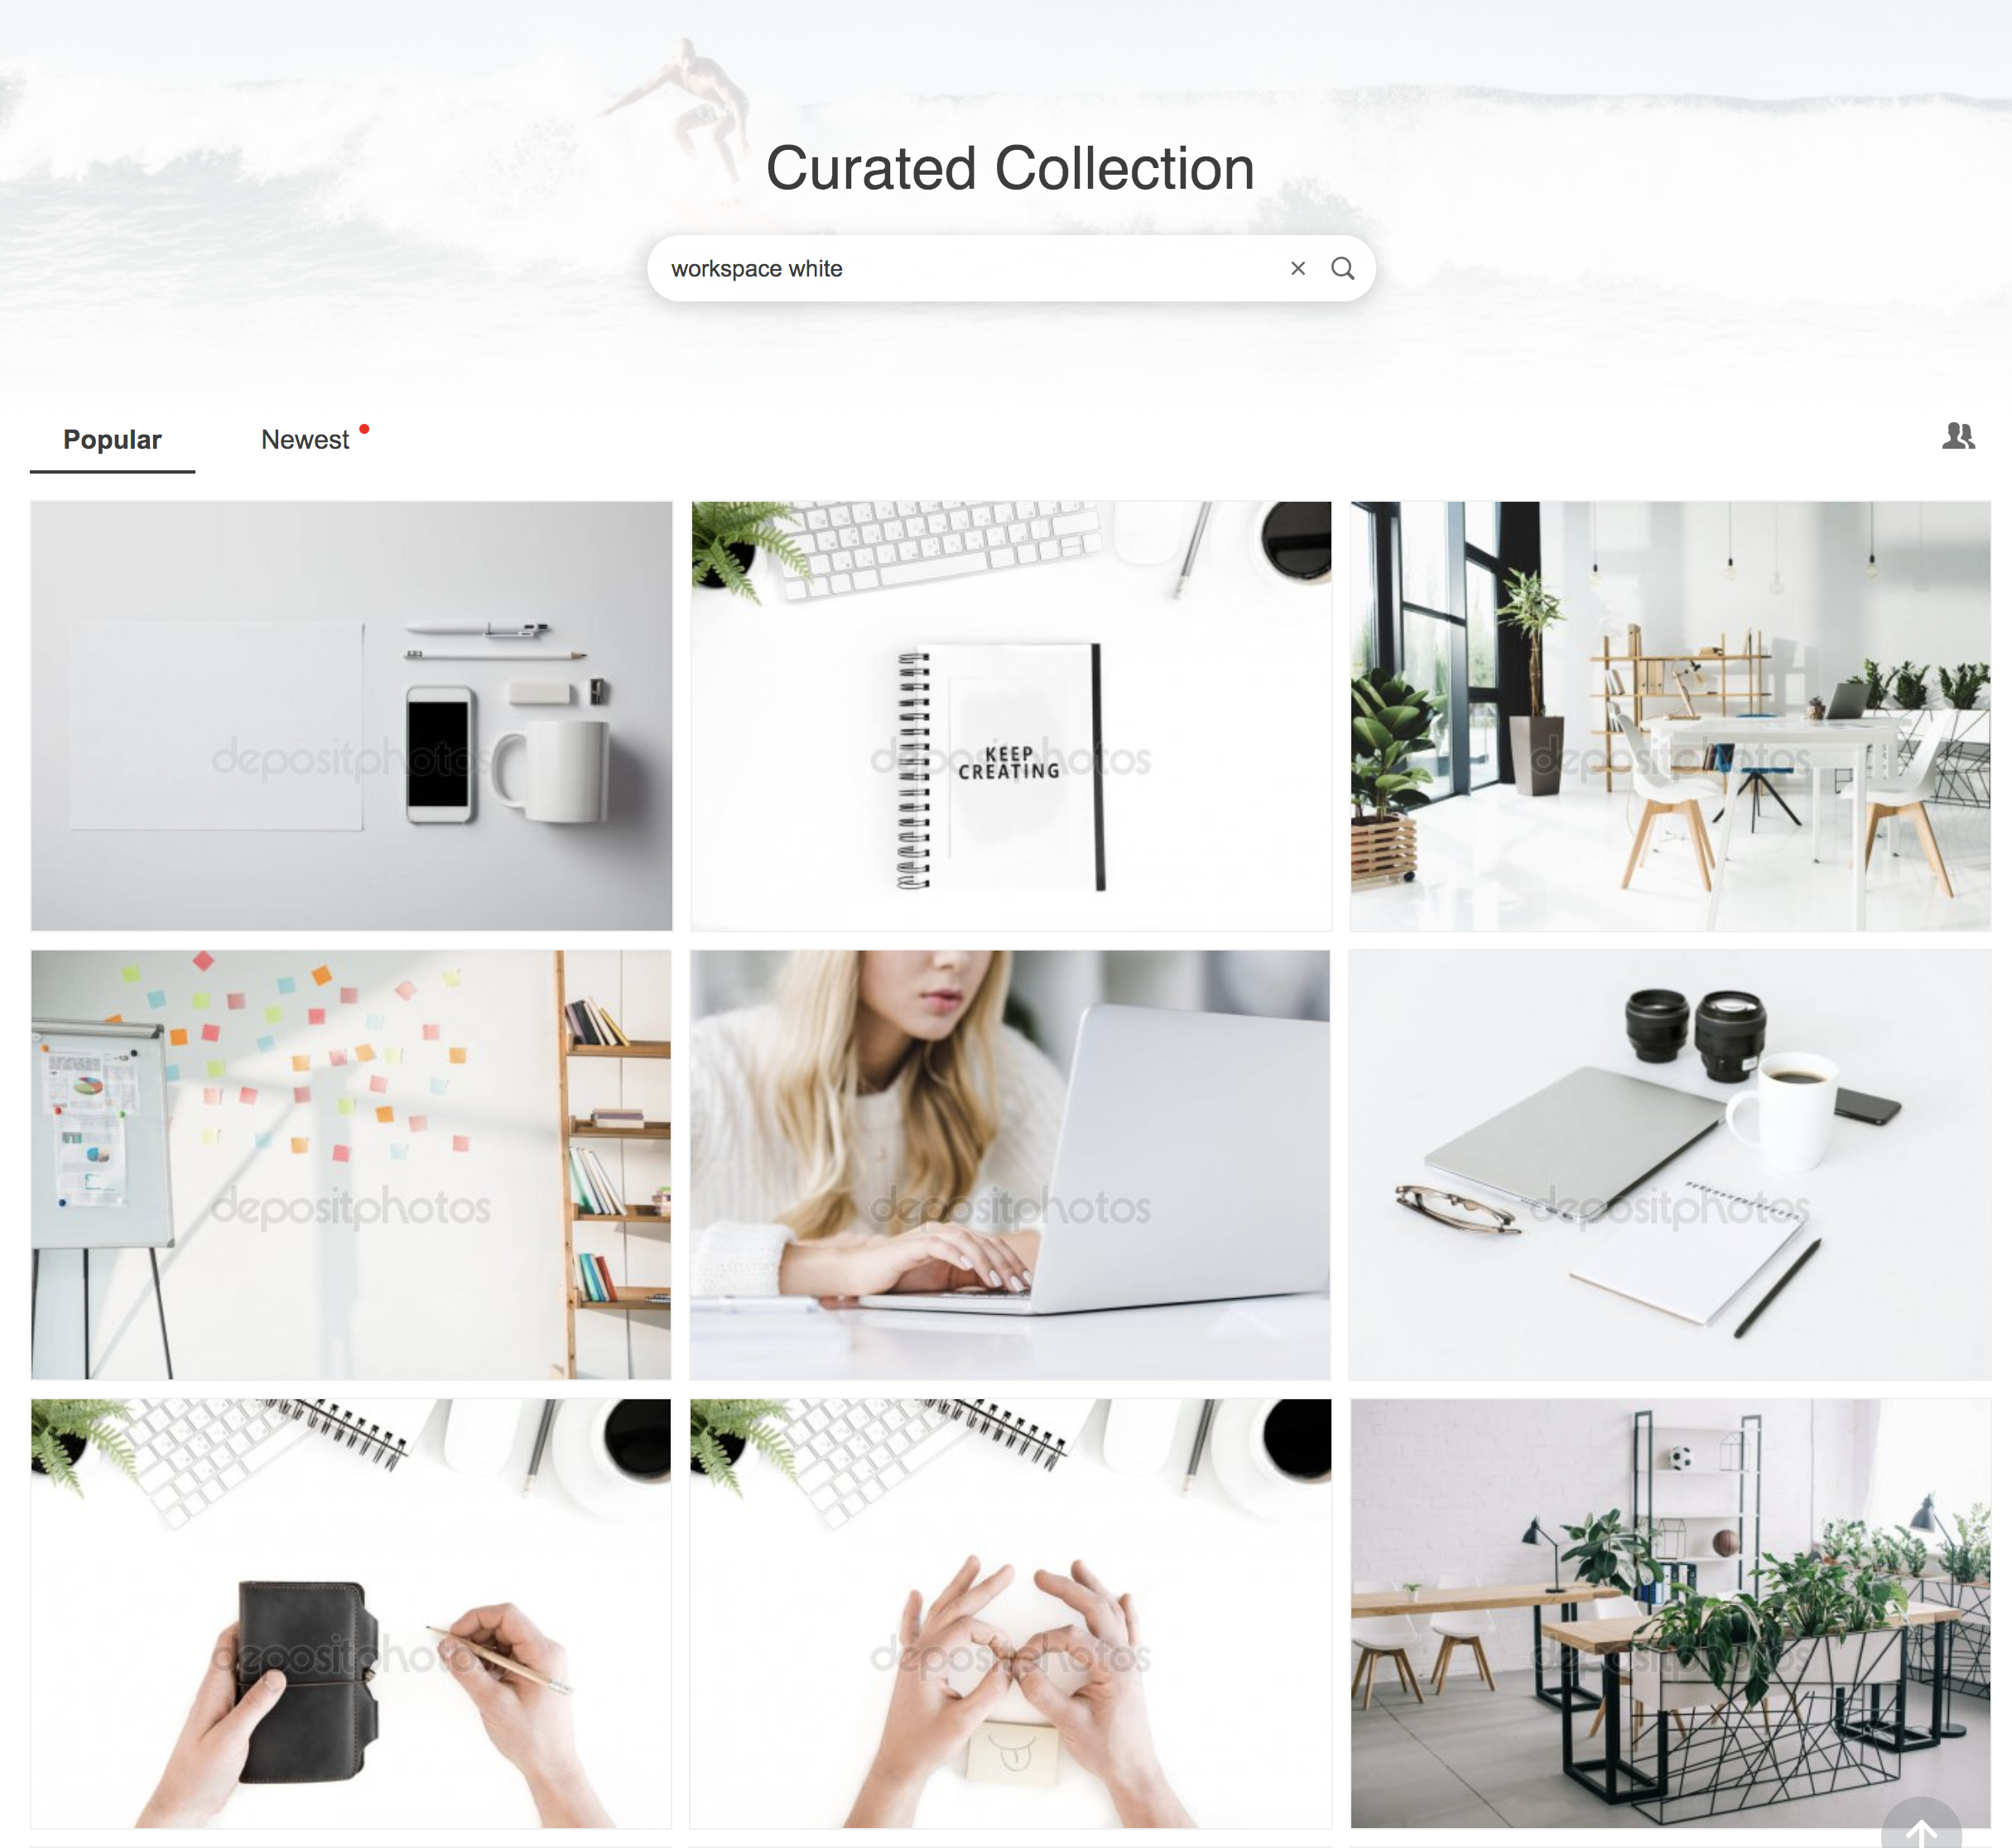 Workspace (white) images